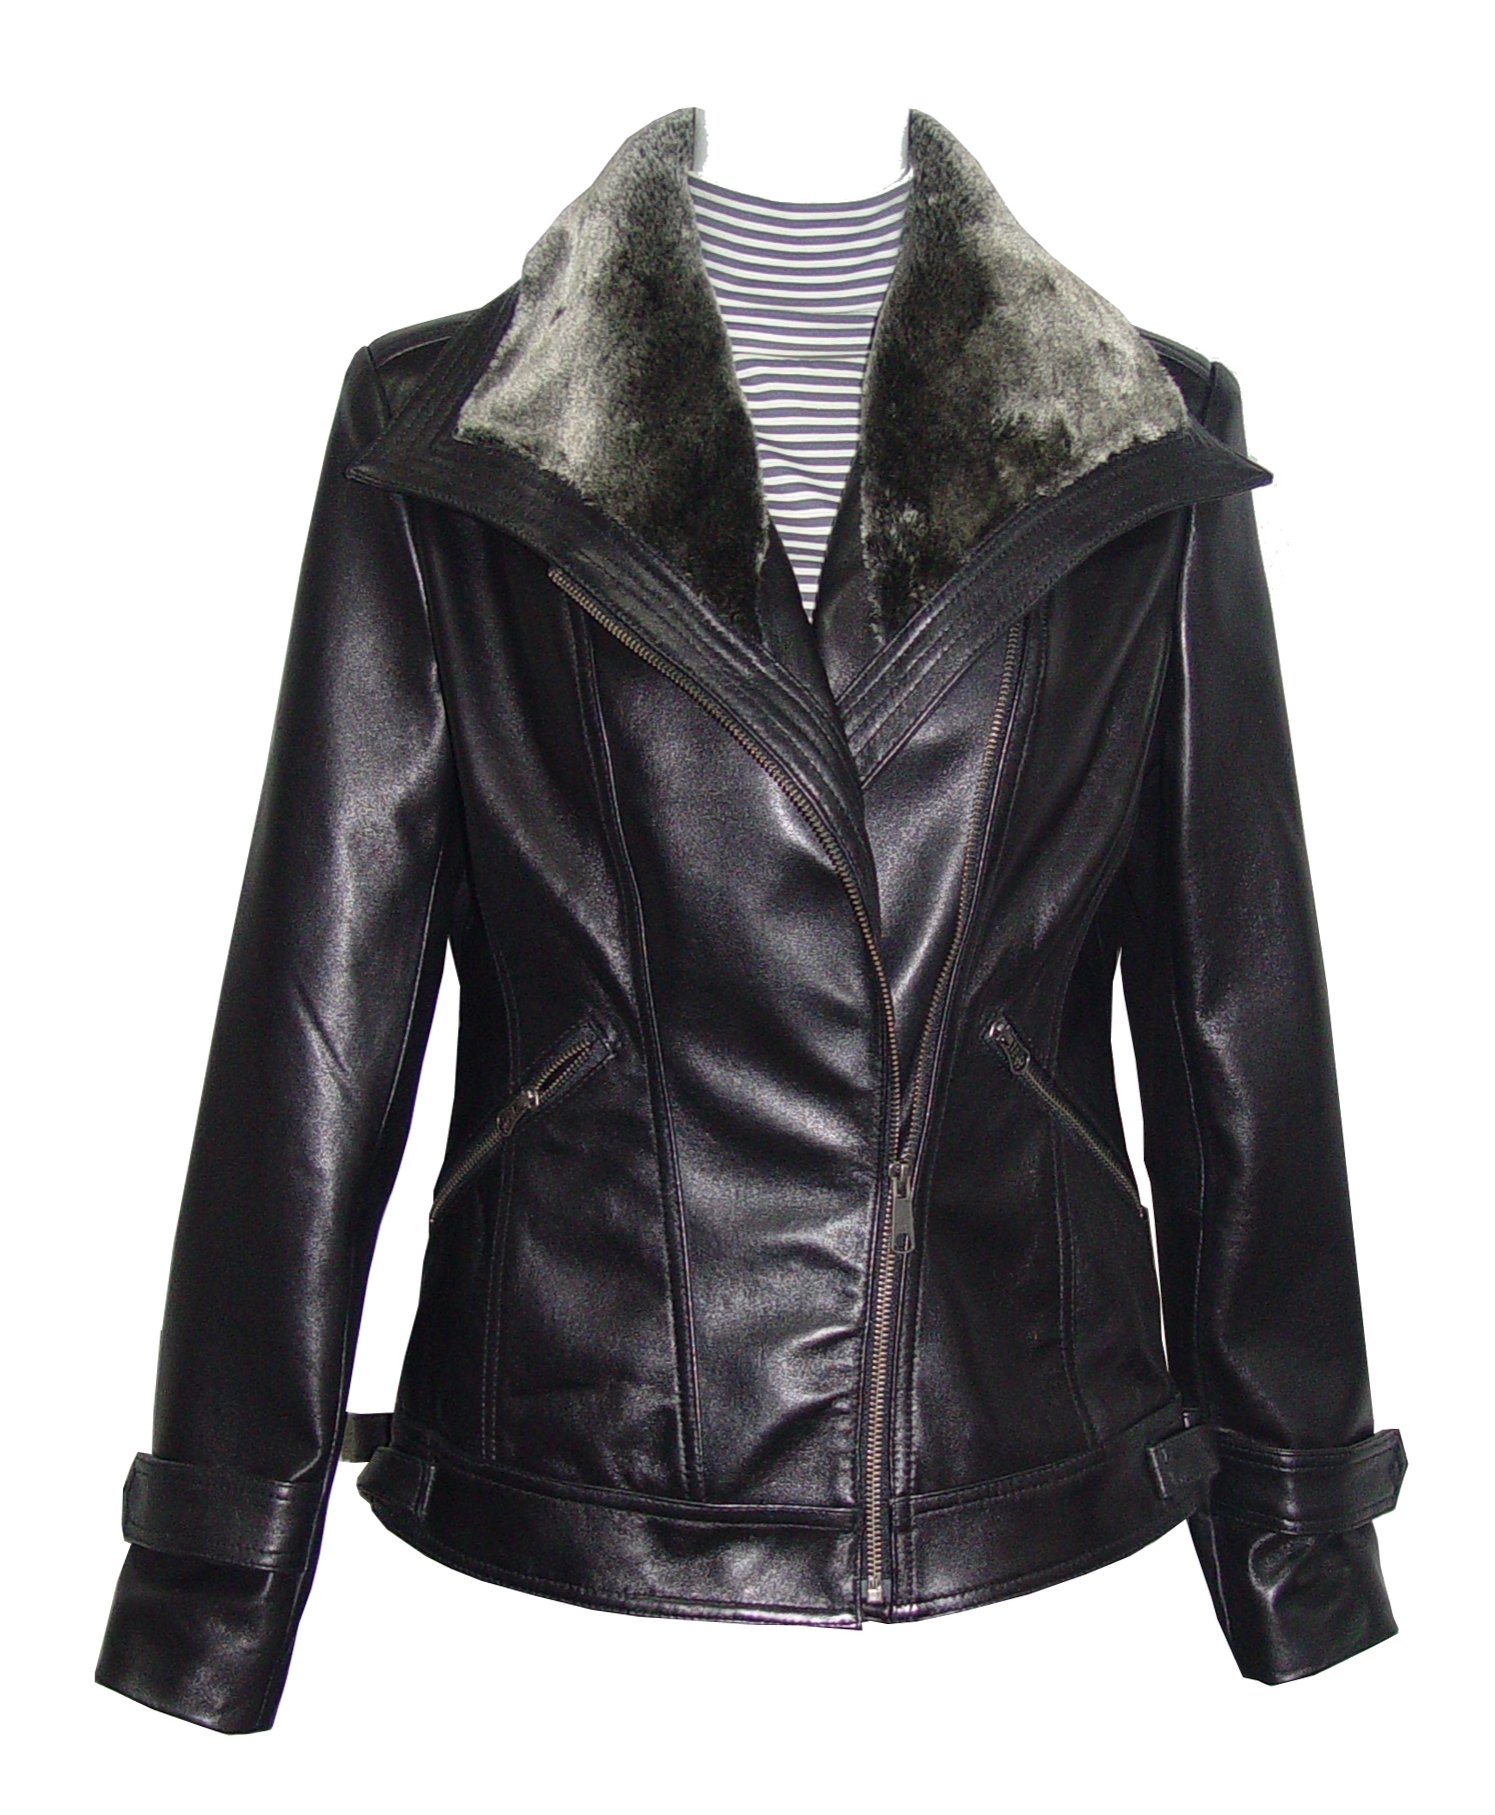 Nettailor 4061 Leather Motorcycle Jackets Womens Faux Fur Trim Fine Lamb